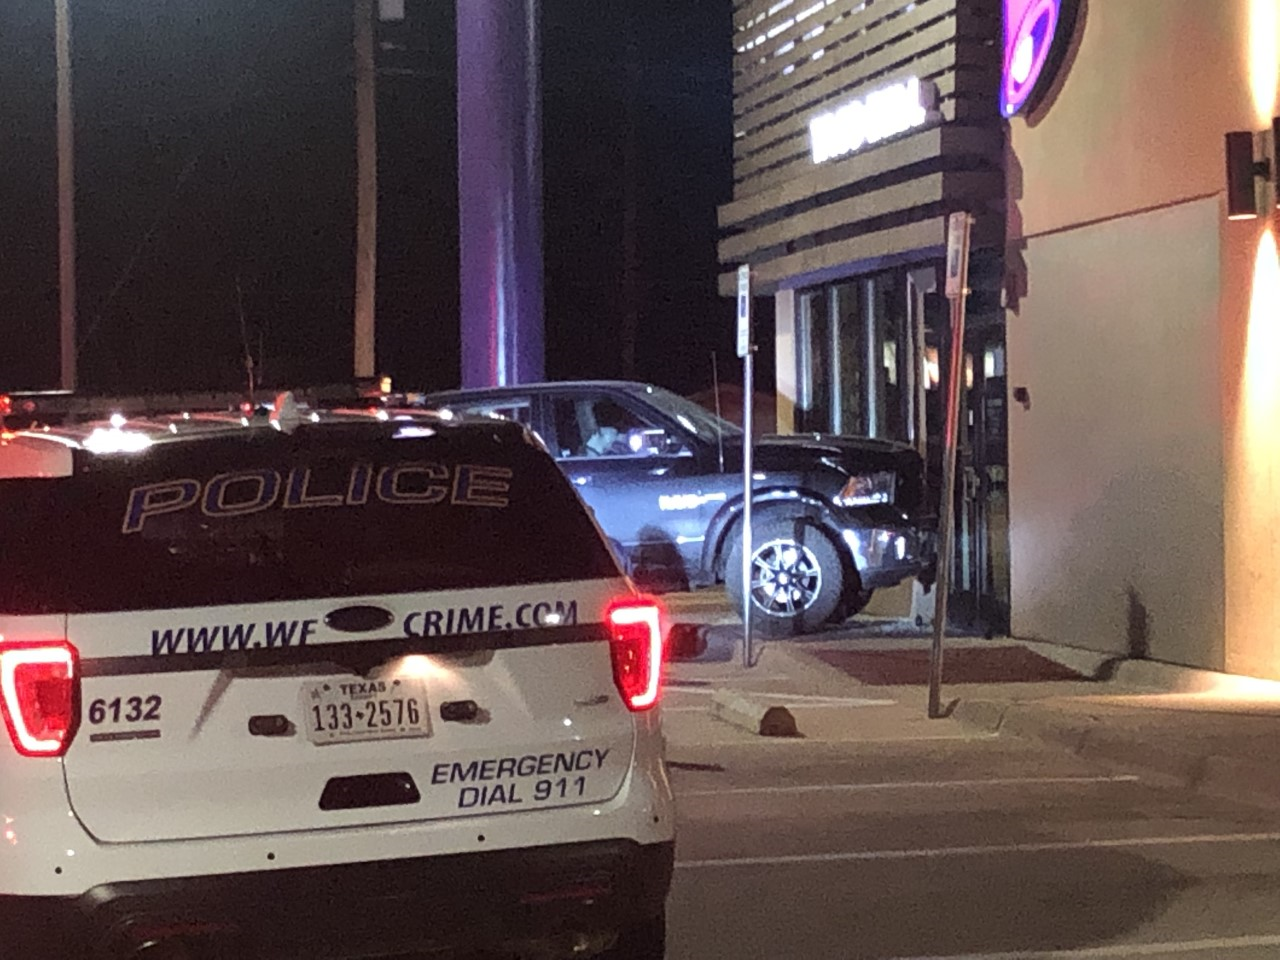 Man arrested after reportedly crashing into local Taco Bell restaurant